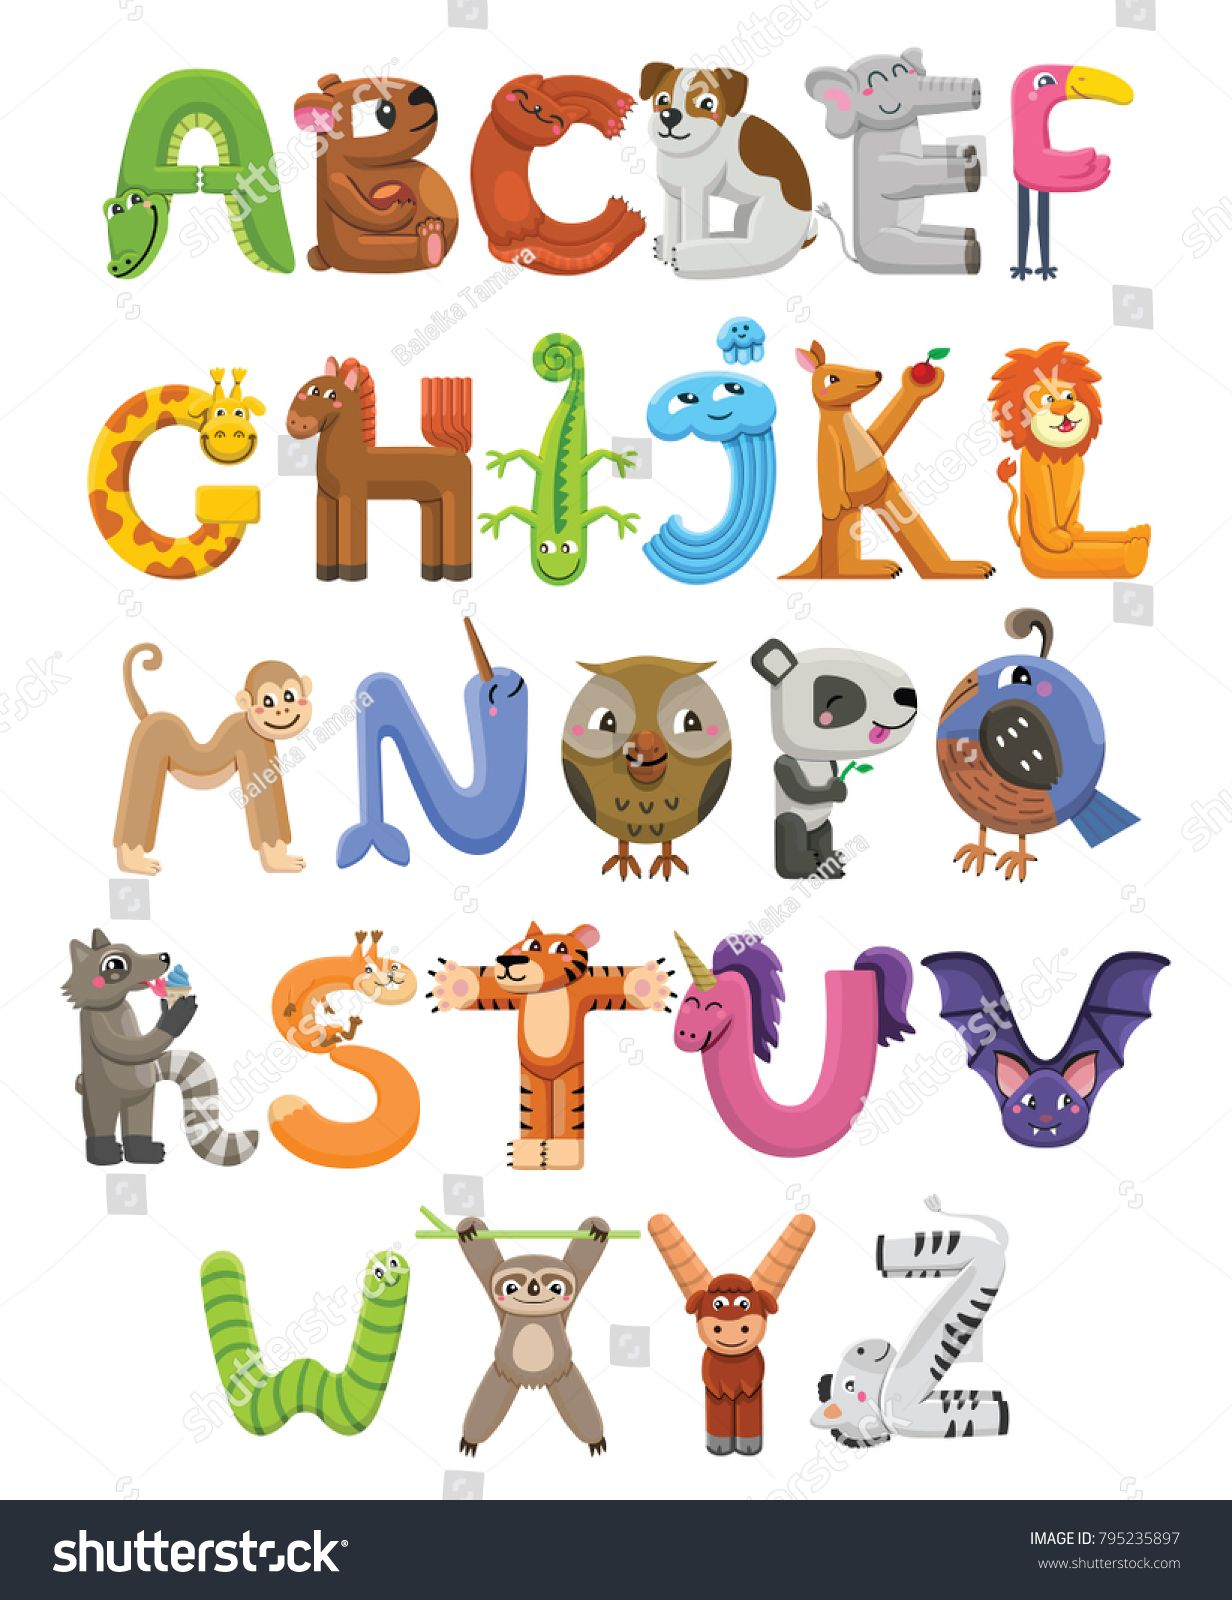 Zoo alphabet. Animal alphabet. Letters from A to Z. Cartoon.